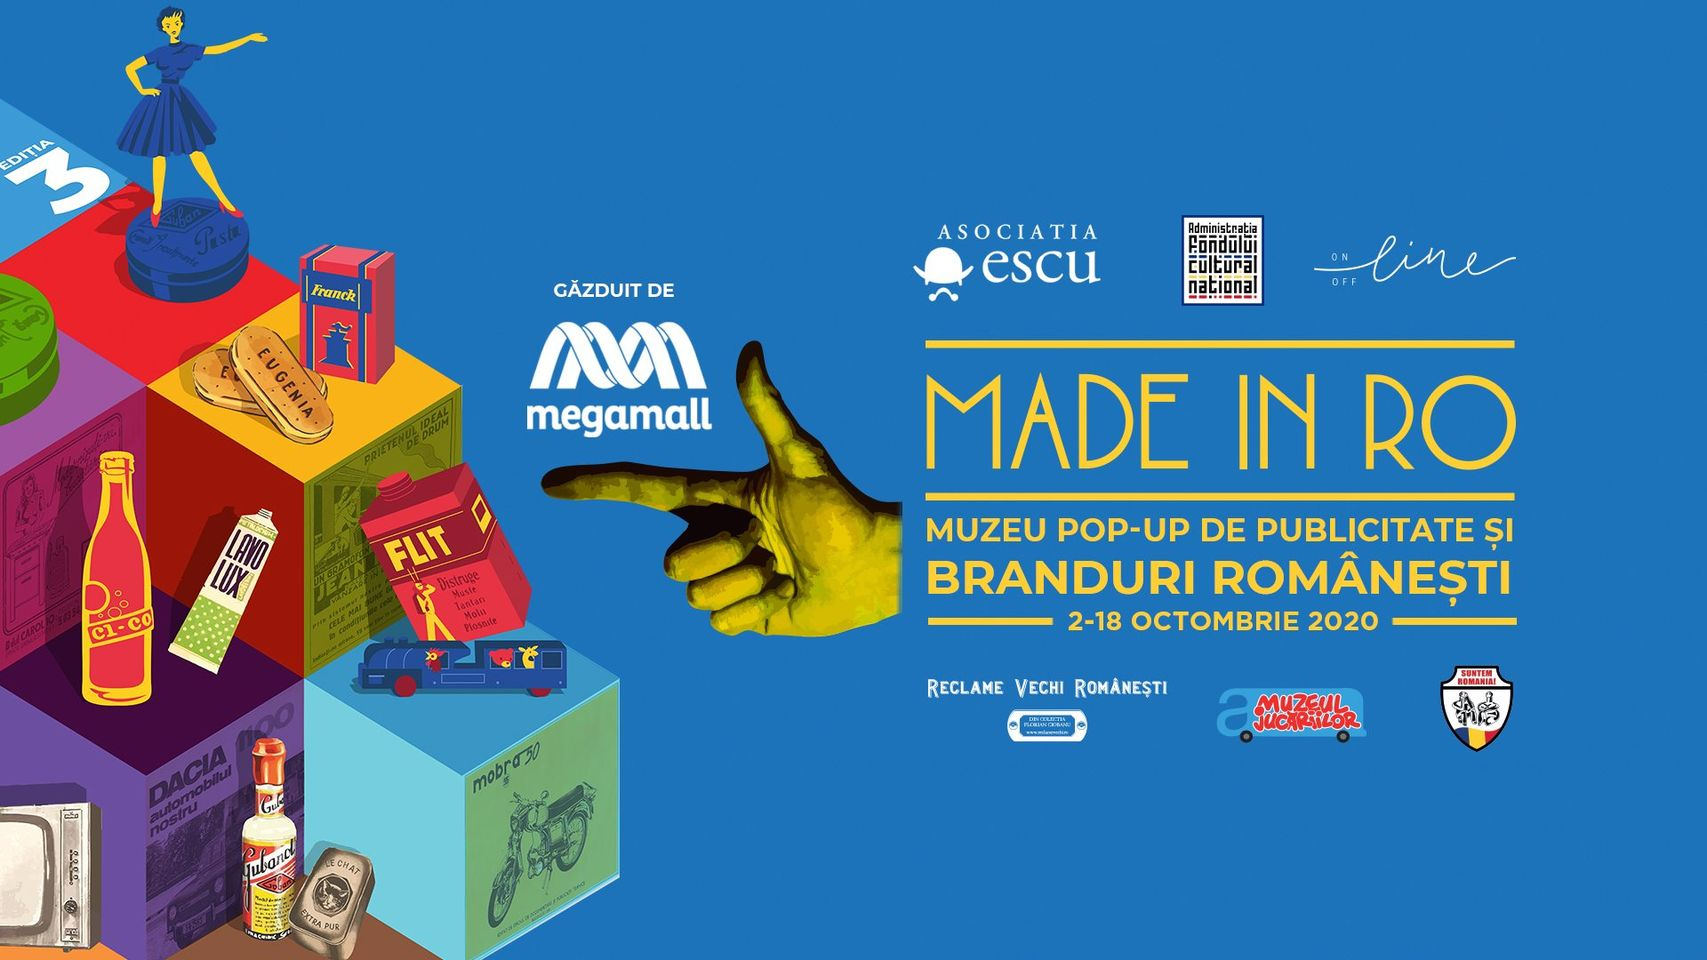 evenimente weekend 2-4 oct made in ro muzeu pop-up de publicitate și branduri